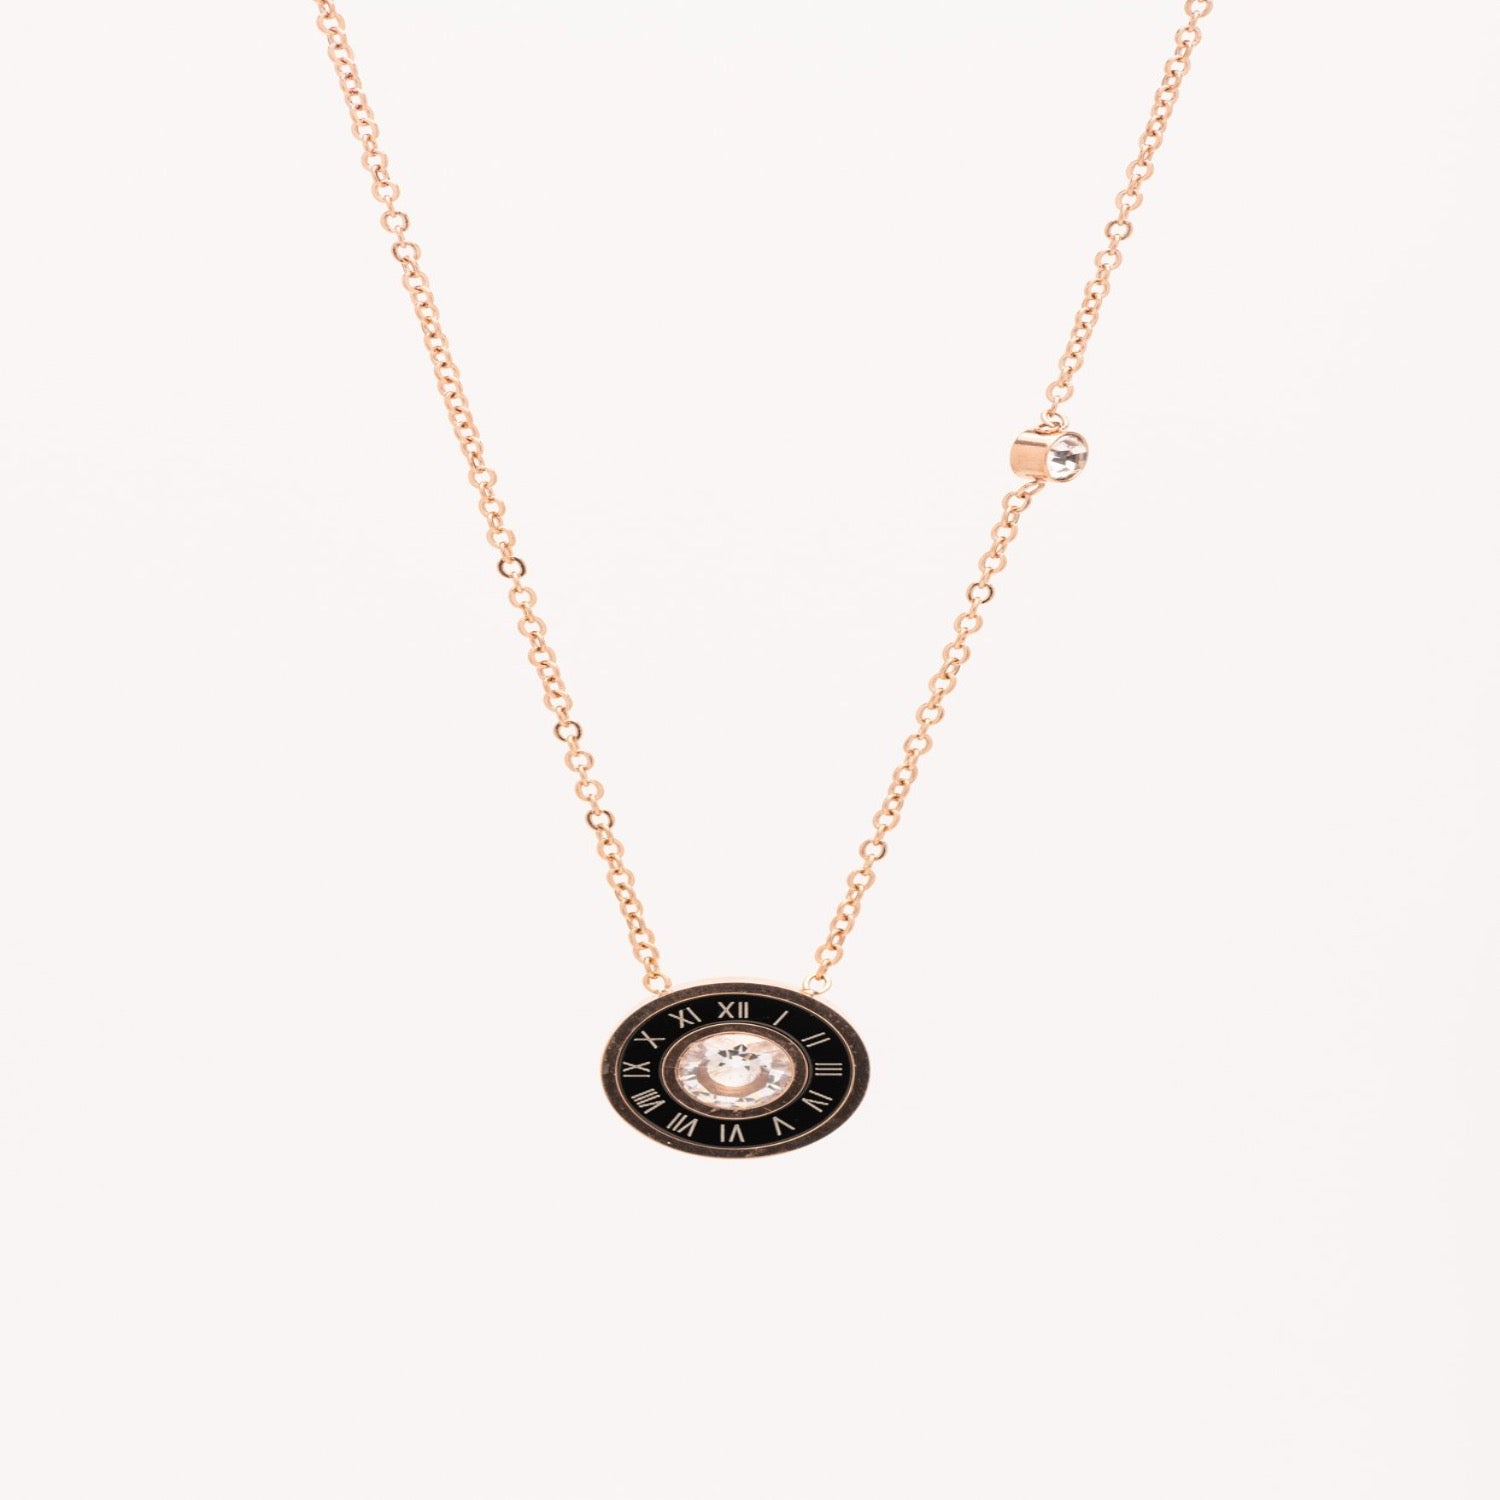 Roman numerals and Cubic Zirconia necklace in Rose gold.